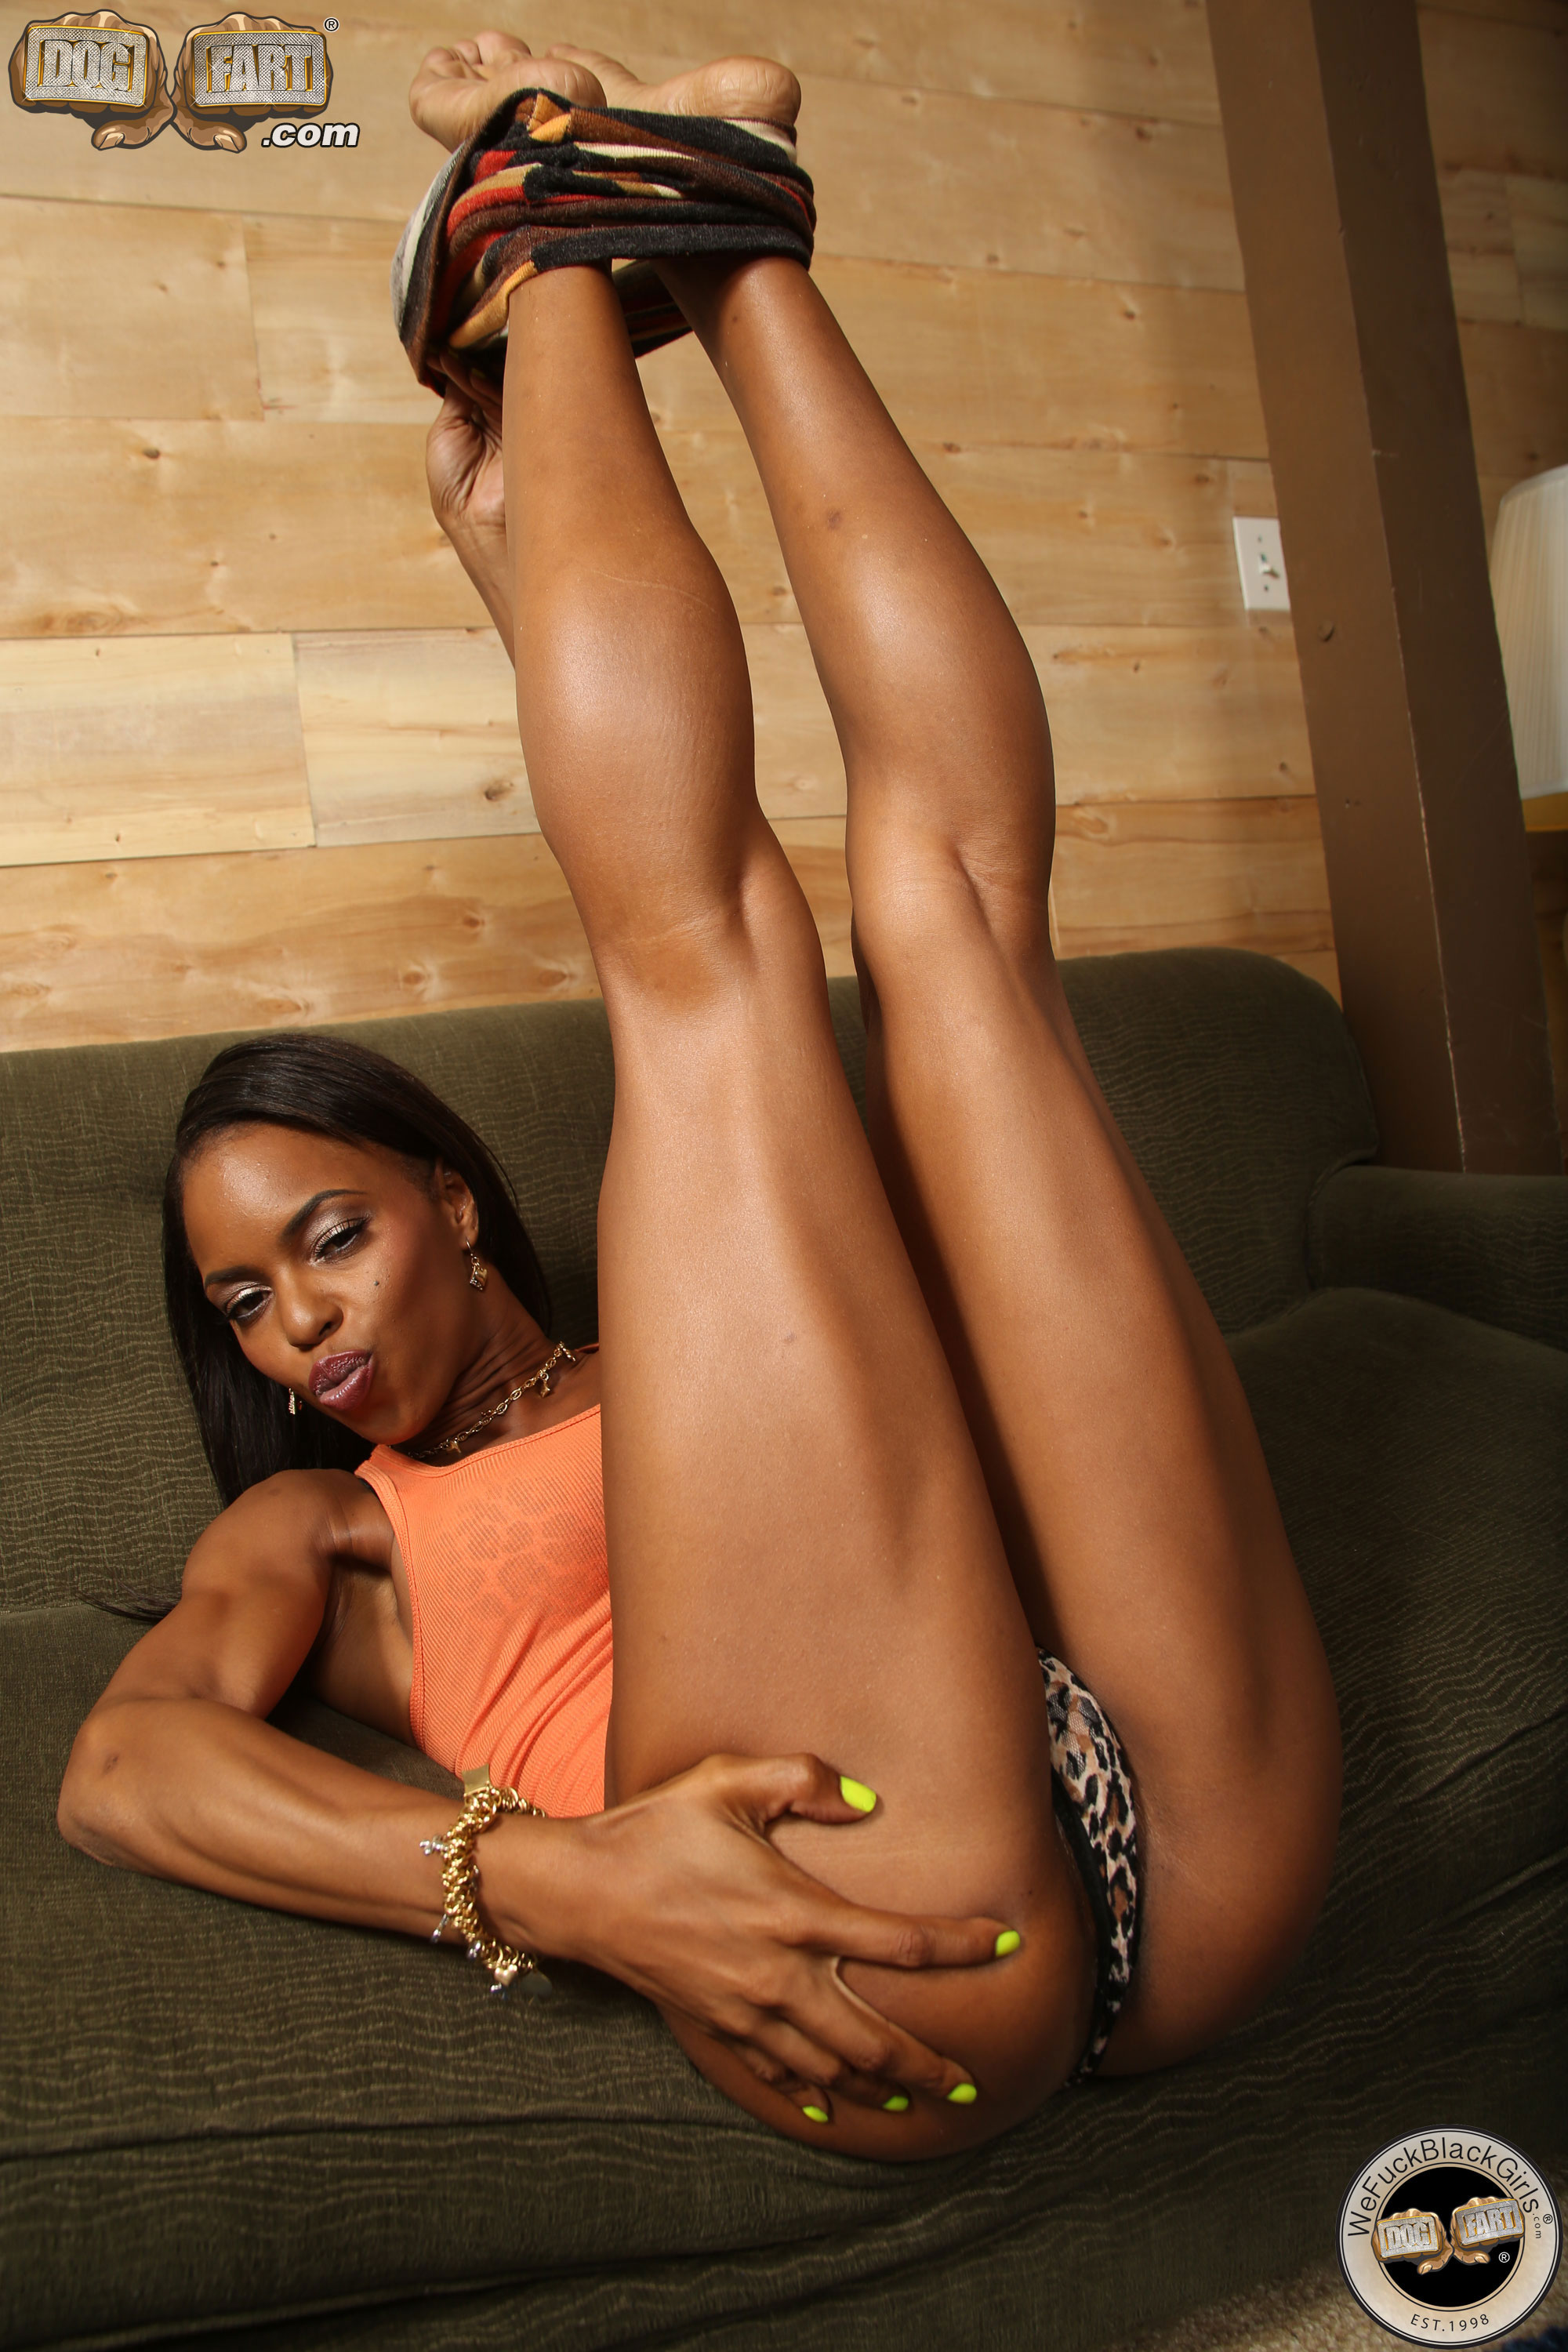 galleries WeFuckBlackGirls content marie luv pic 07